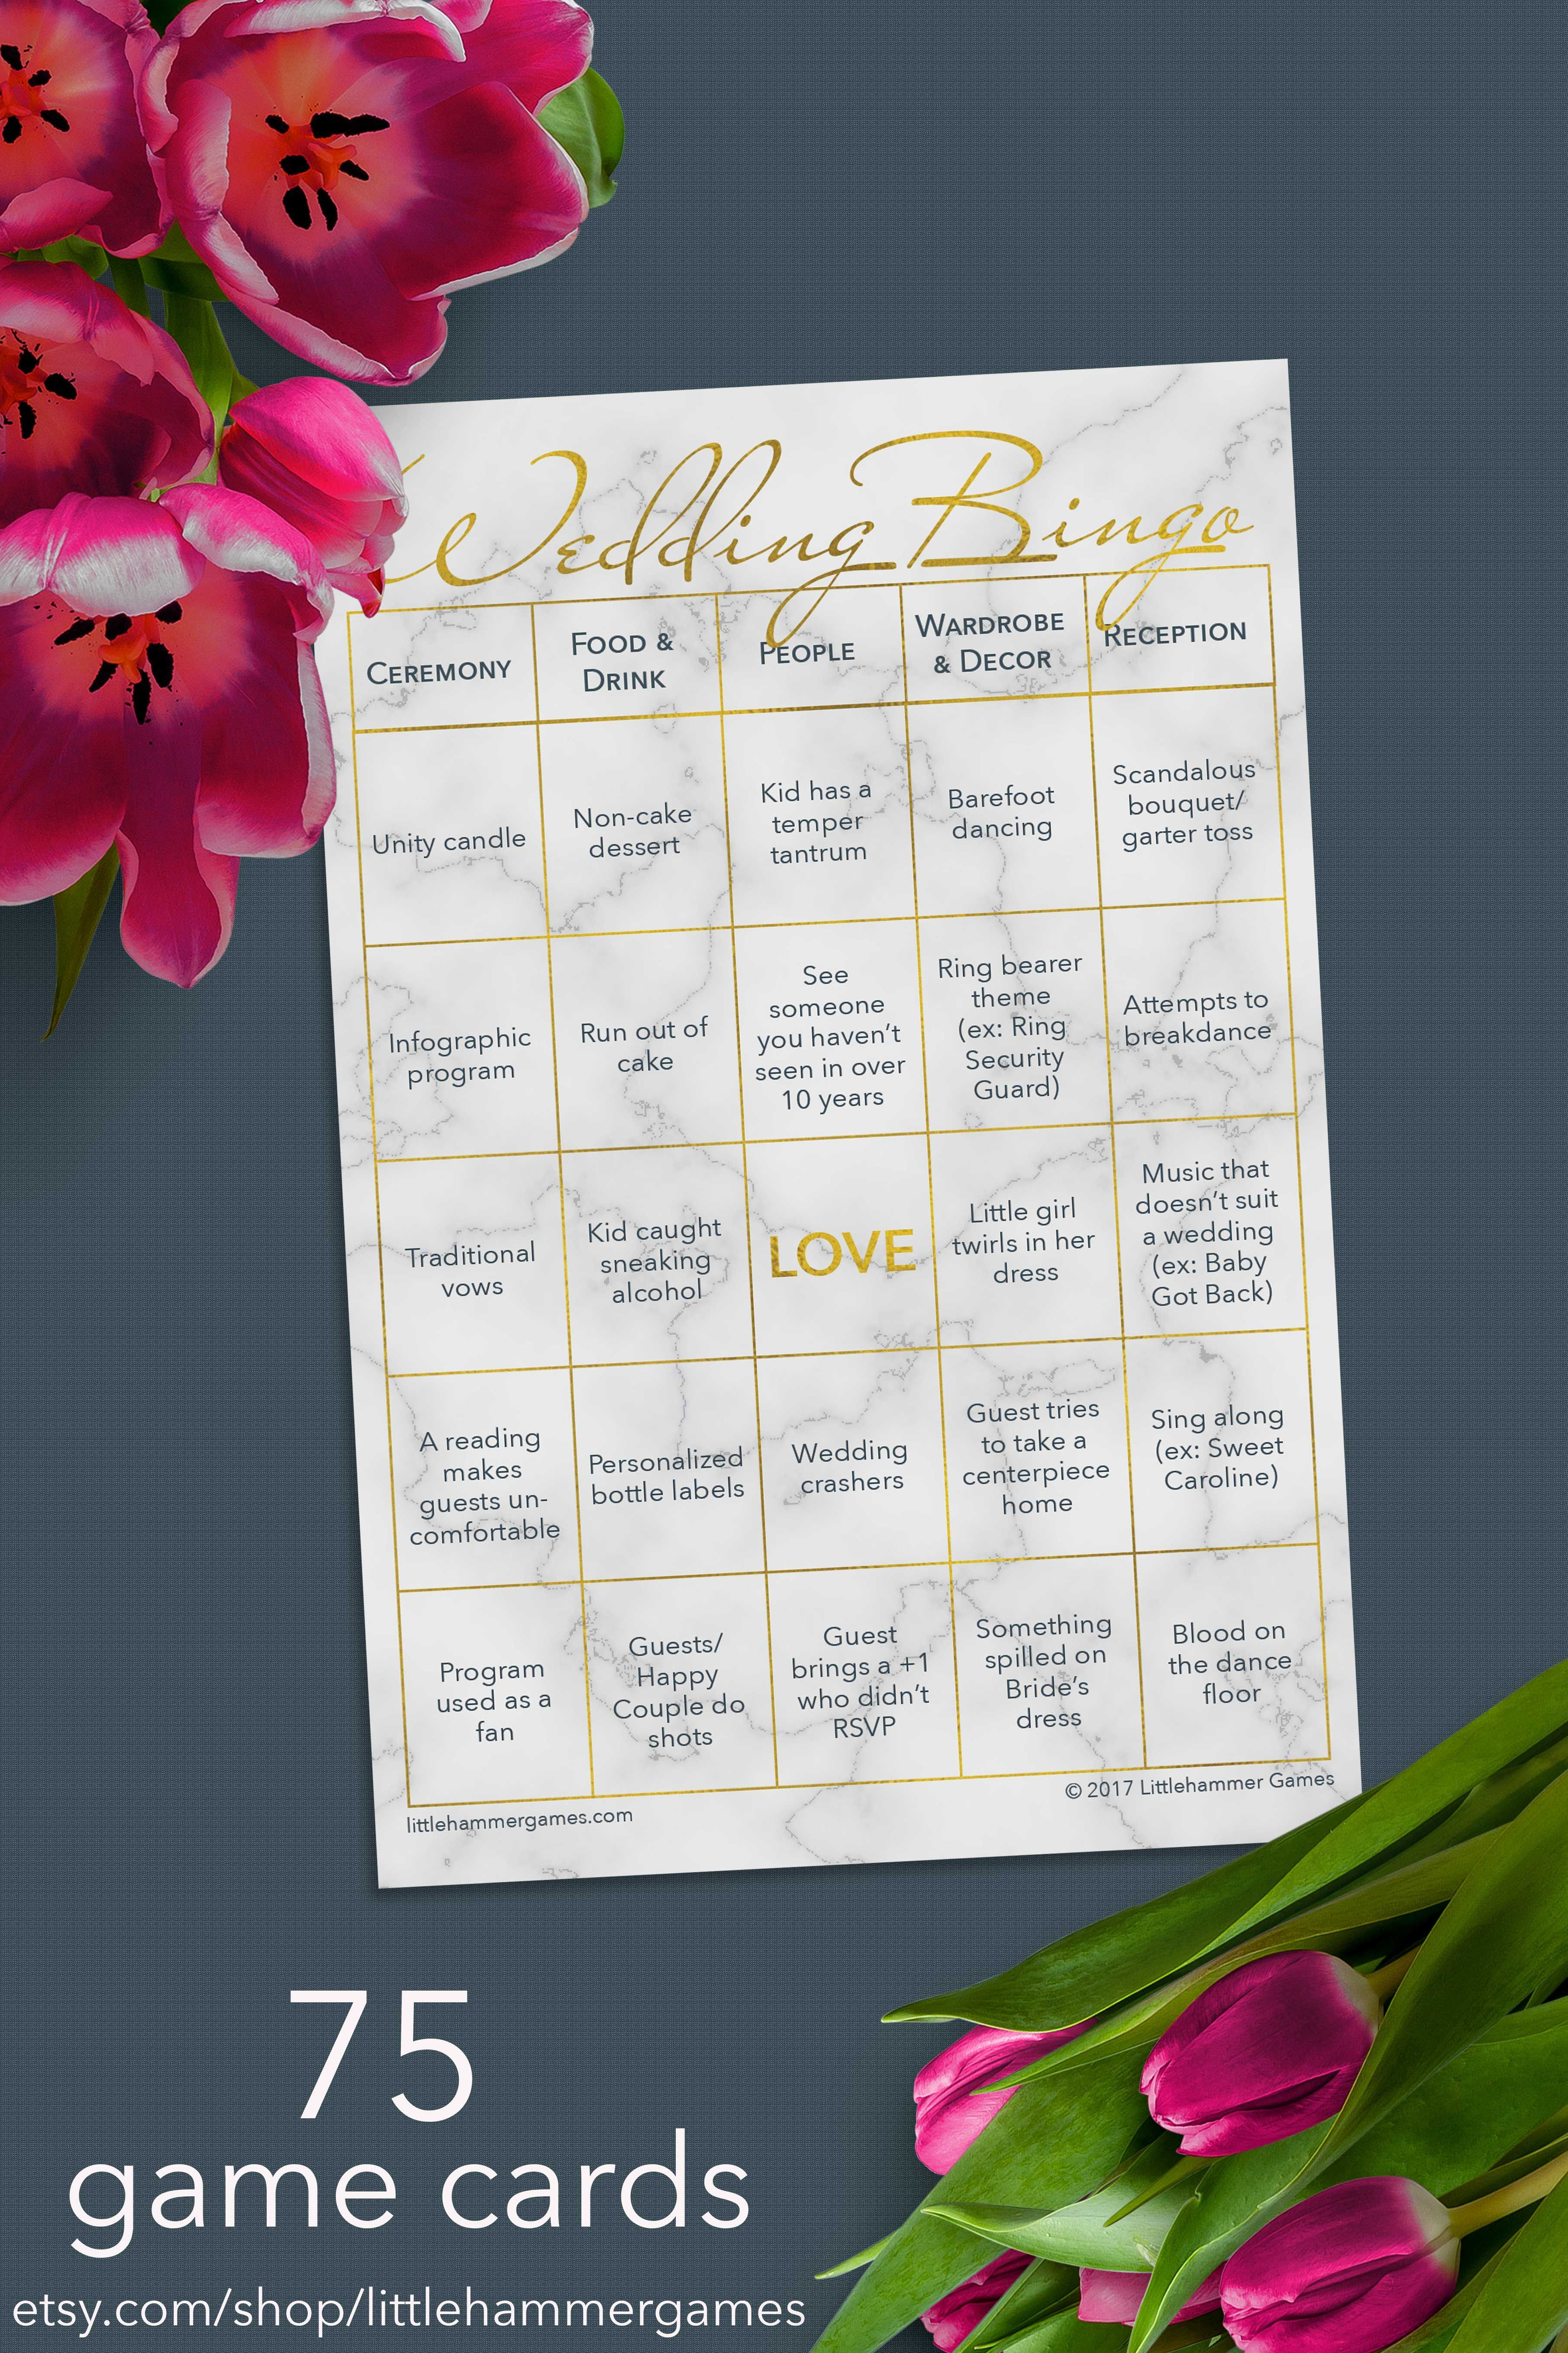 75 printable wedding bingo game cards: the wedding reception game in